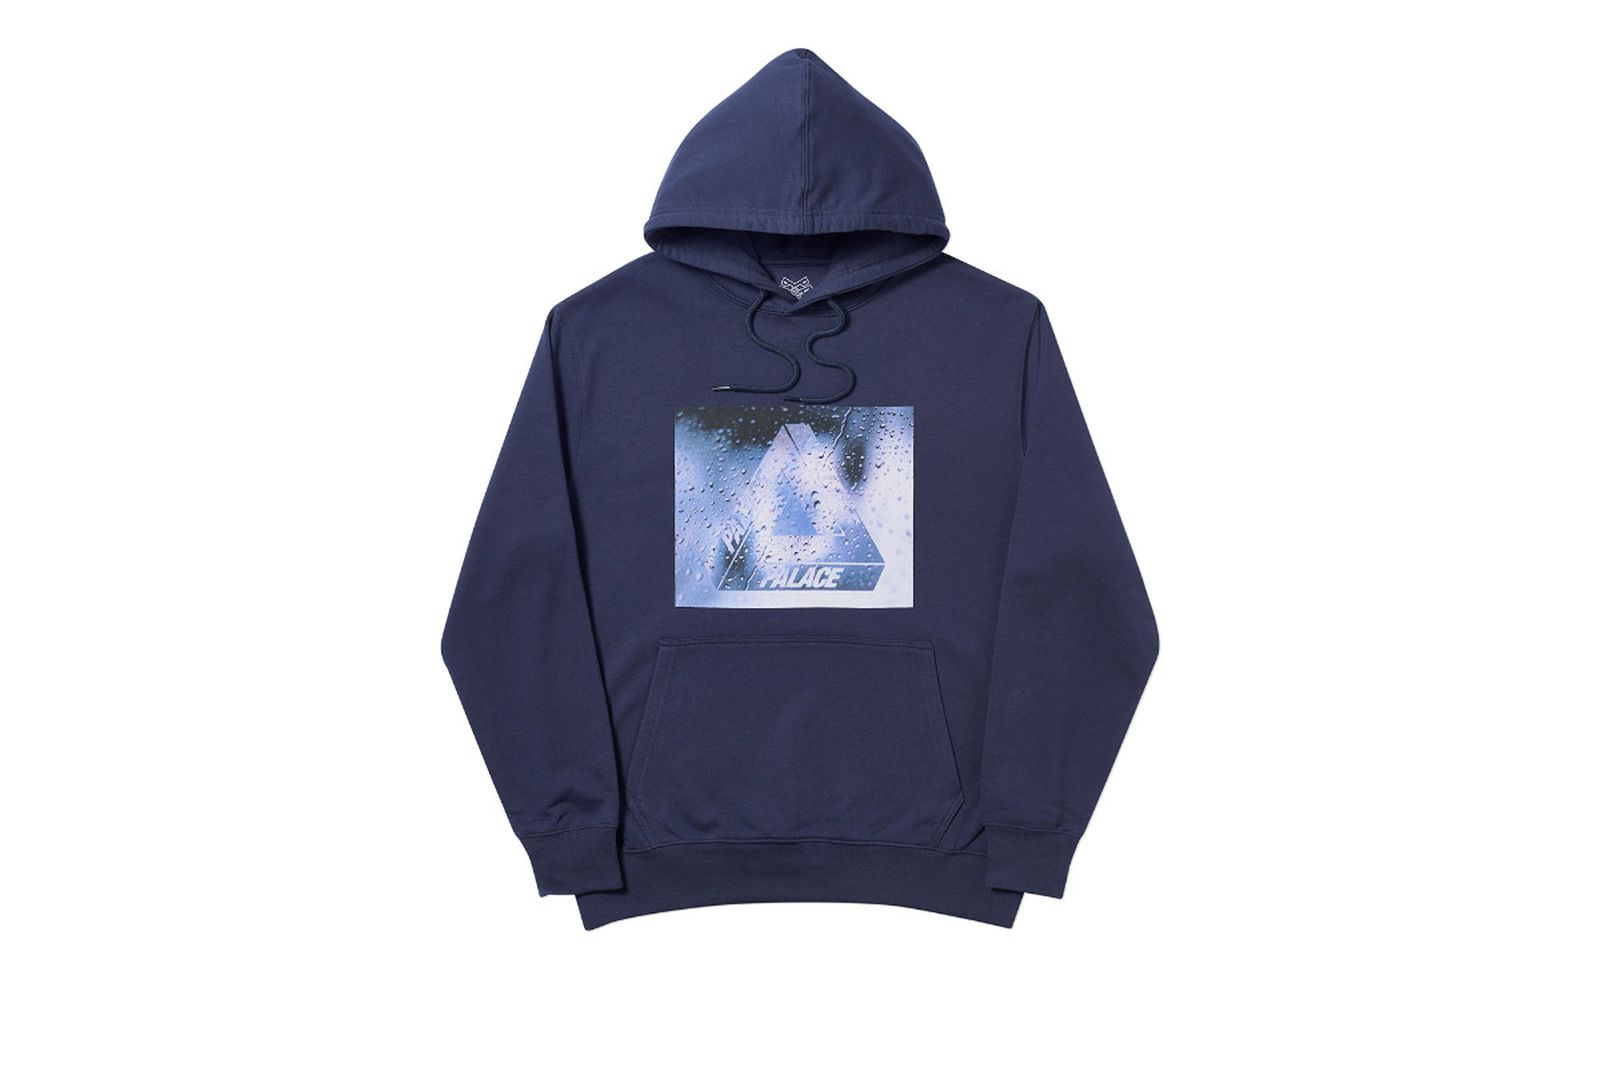 Palace 2019 Autumn Hoodie Window Licker navy front 14668 ADJUSTED